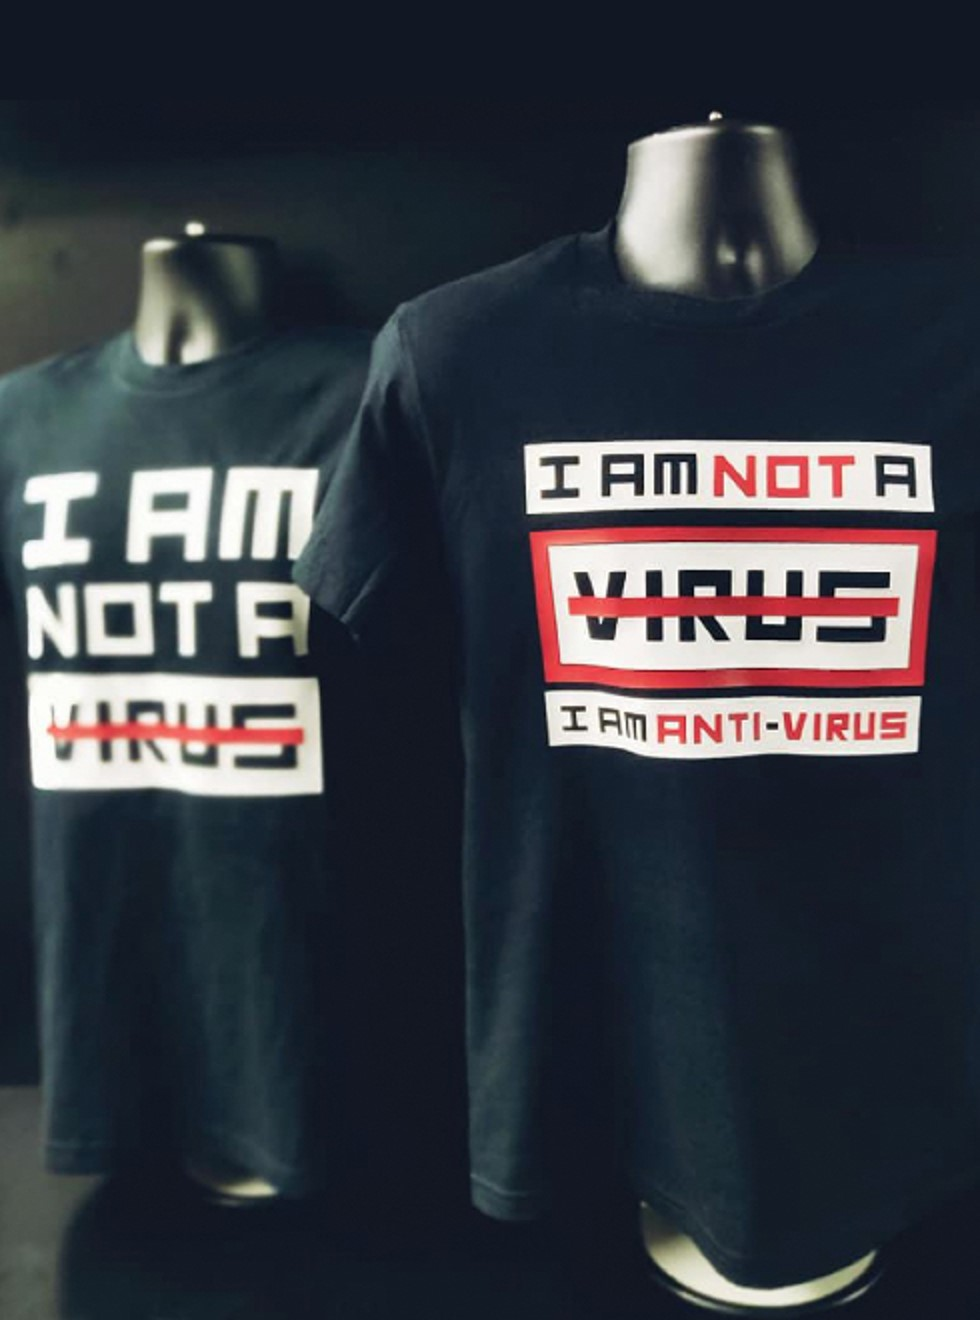 I'm Not a Virus, I'm a Human Being